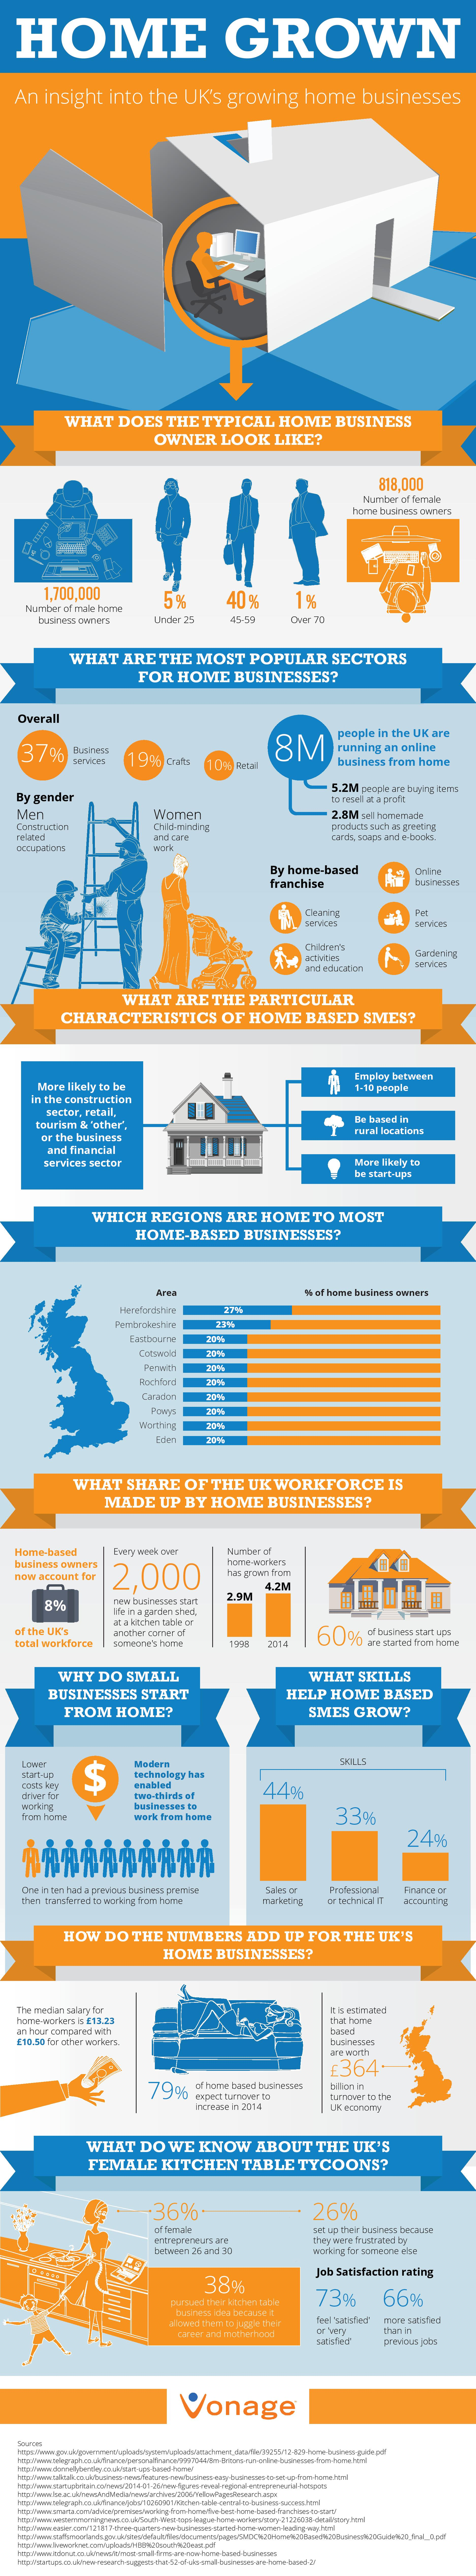 business from home uk best business 2018